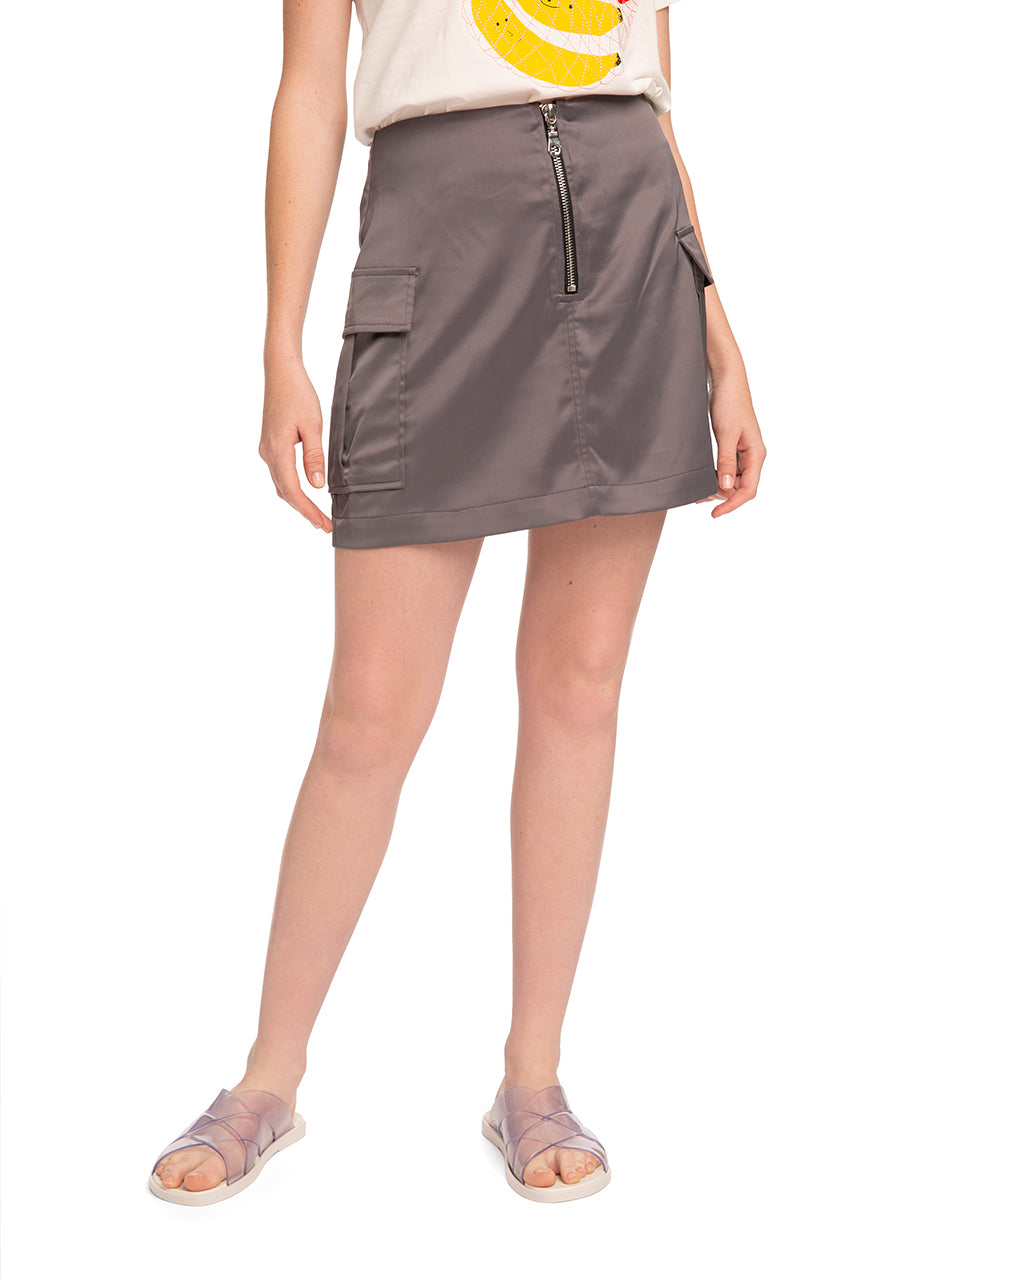 woman wearing a satin skirt with cargo pockets and an exposed front zipper